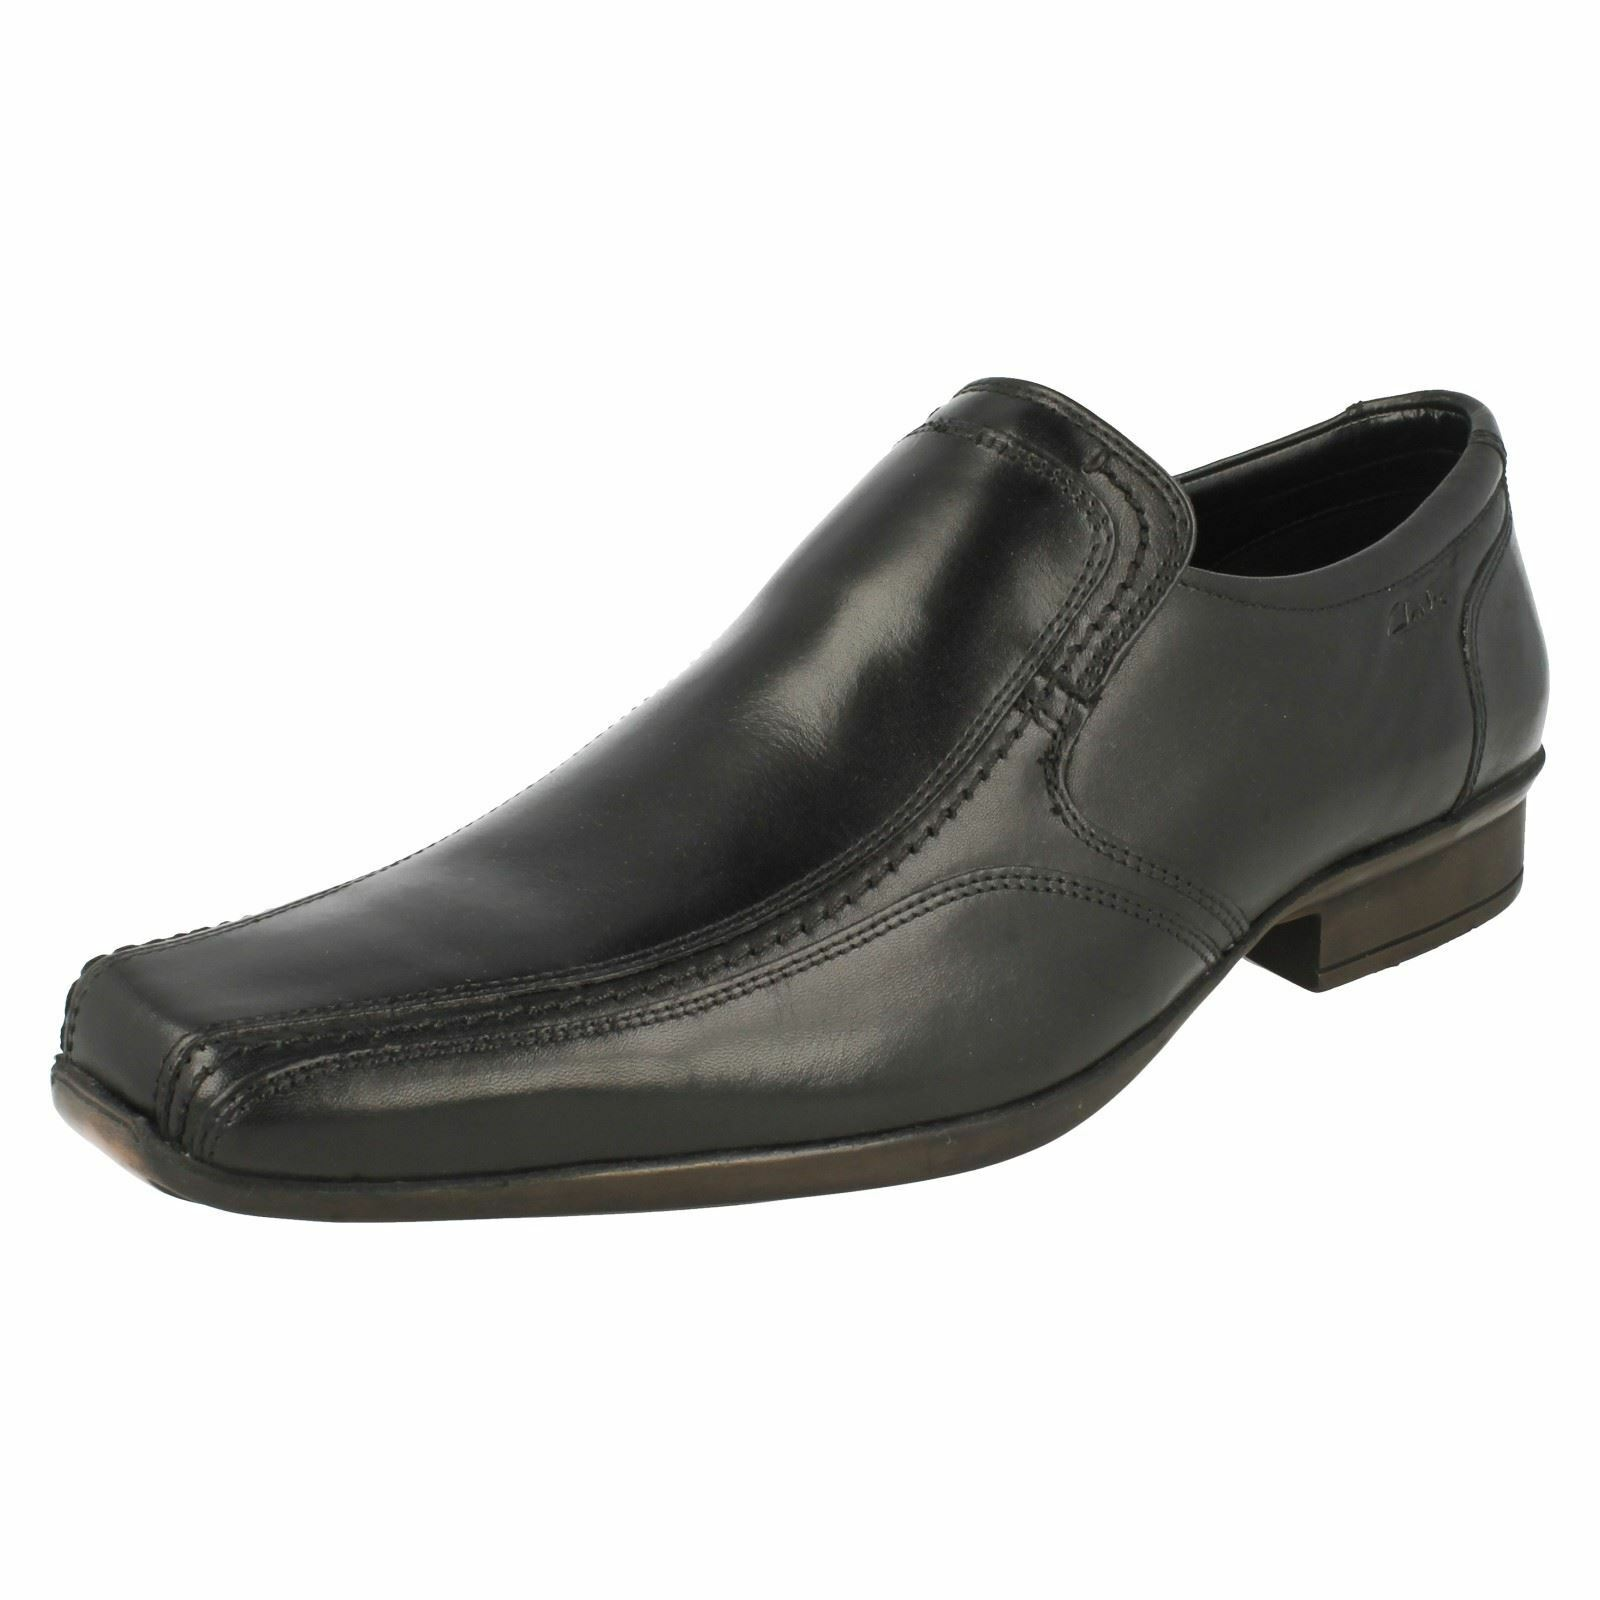 'Mens Clarks' Formal Slip On shoes - Affix Step